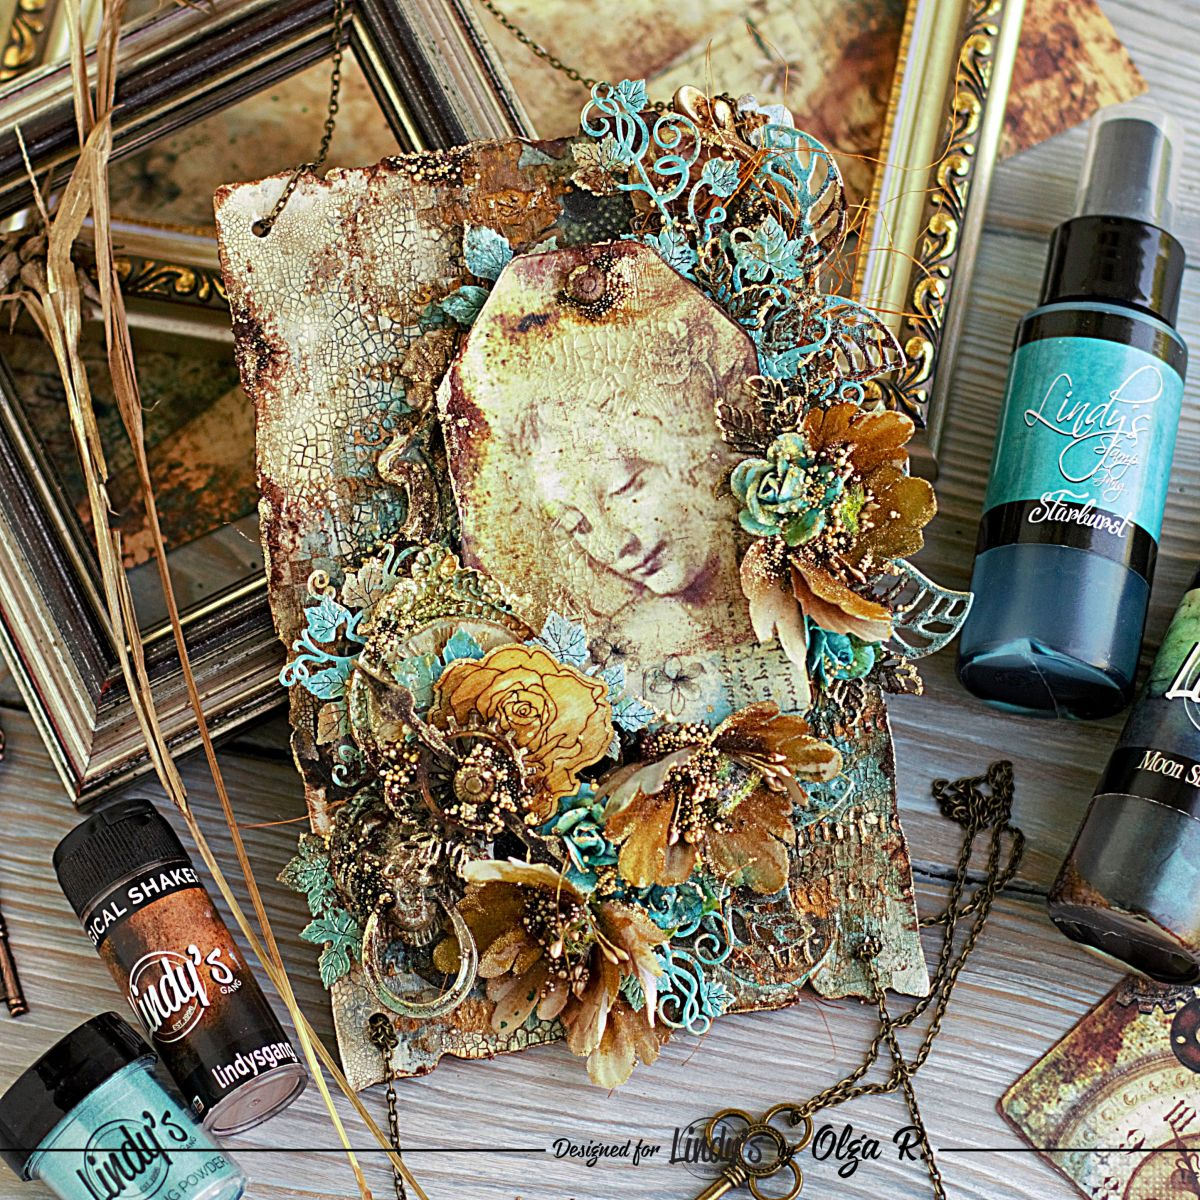 Vintage Mixed Media Panel with Olga Ravenskaya